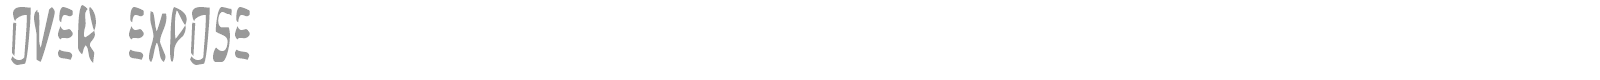 Font Over Expose